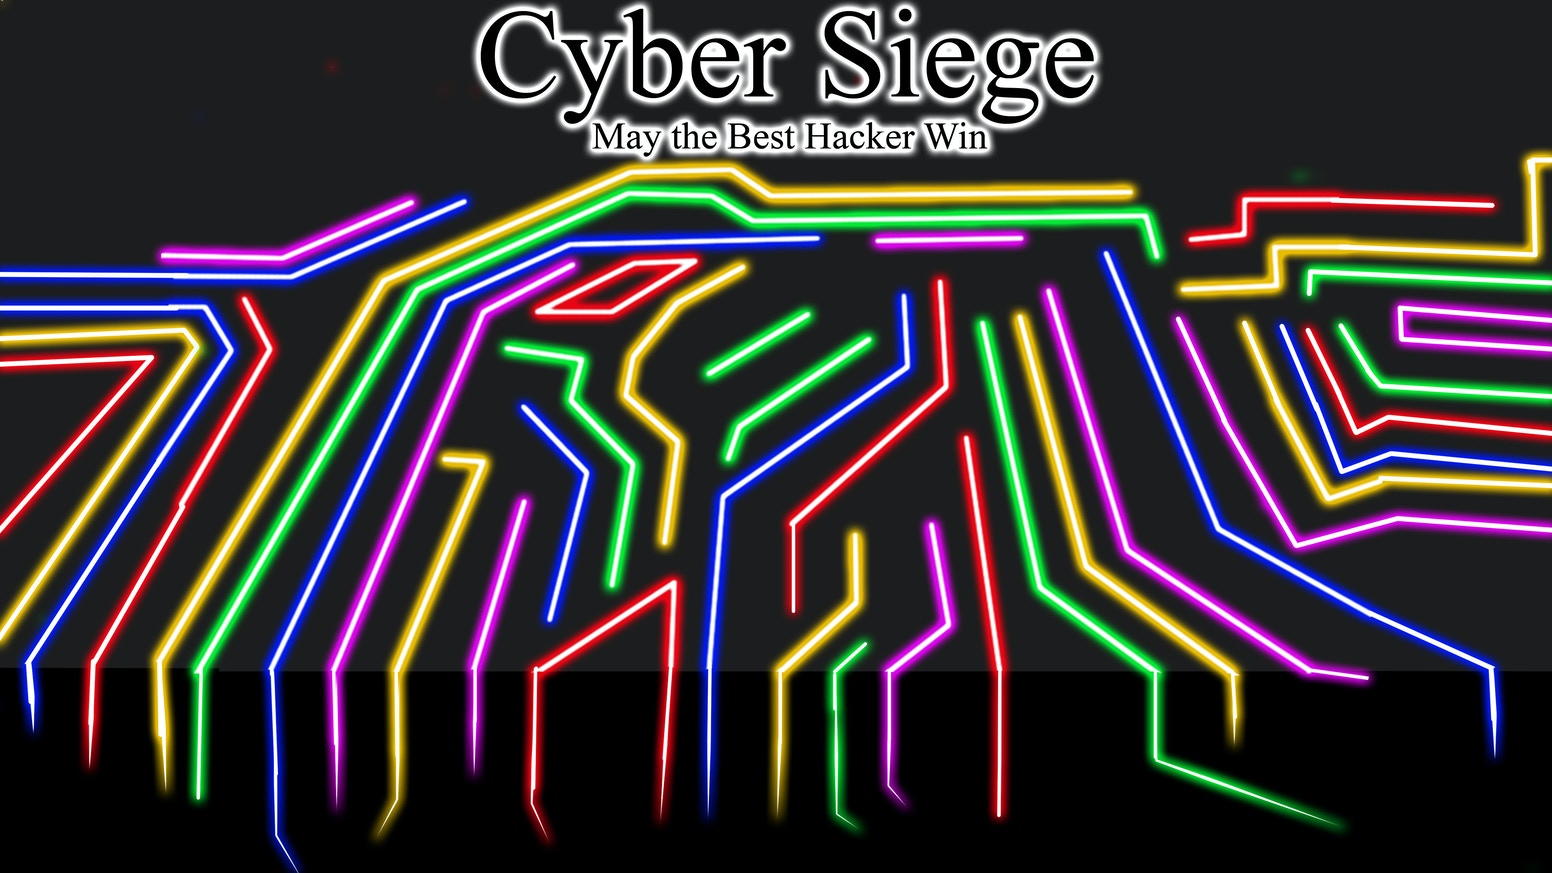 Cyber Siege is a strategy board game with elements of social collusion, quick player turns, easy rules set, and great replayability.